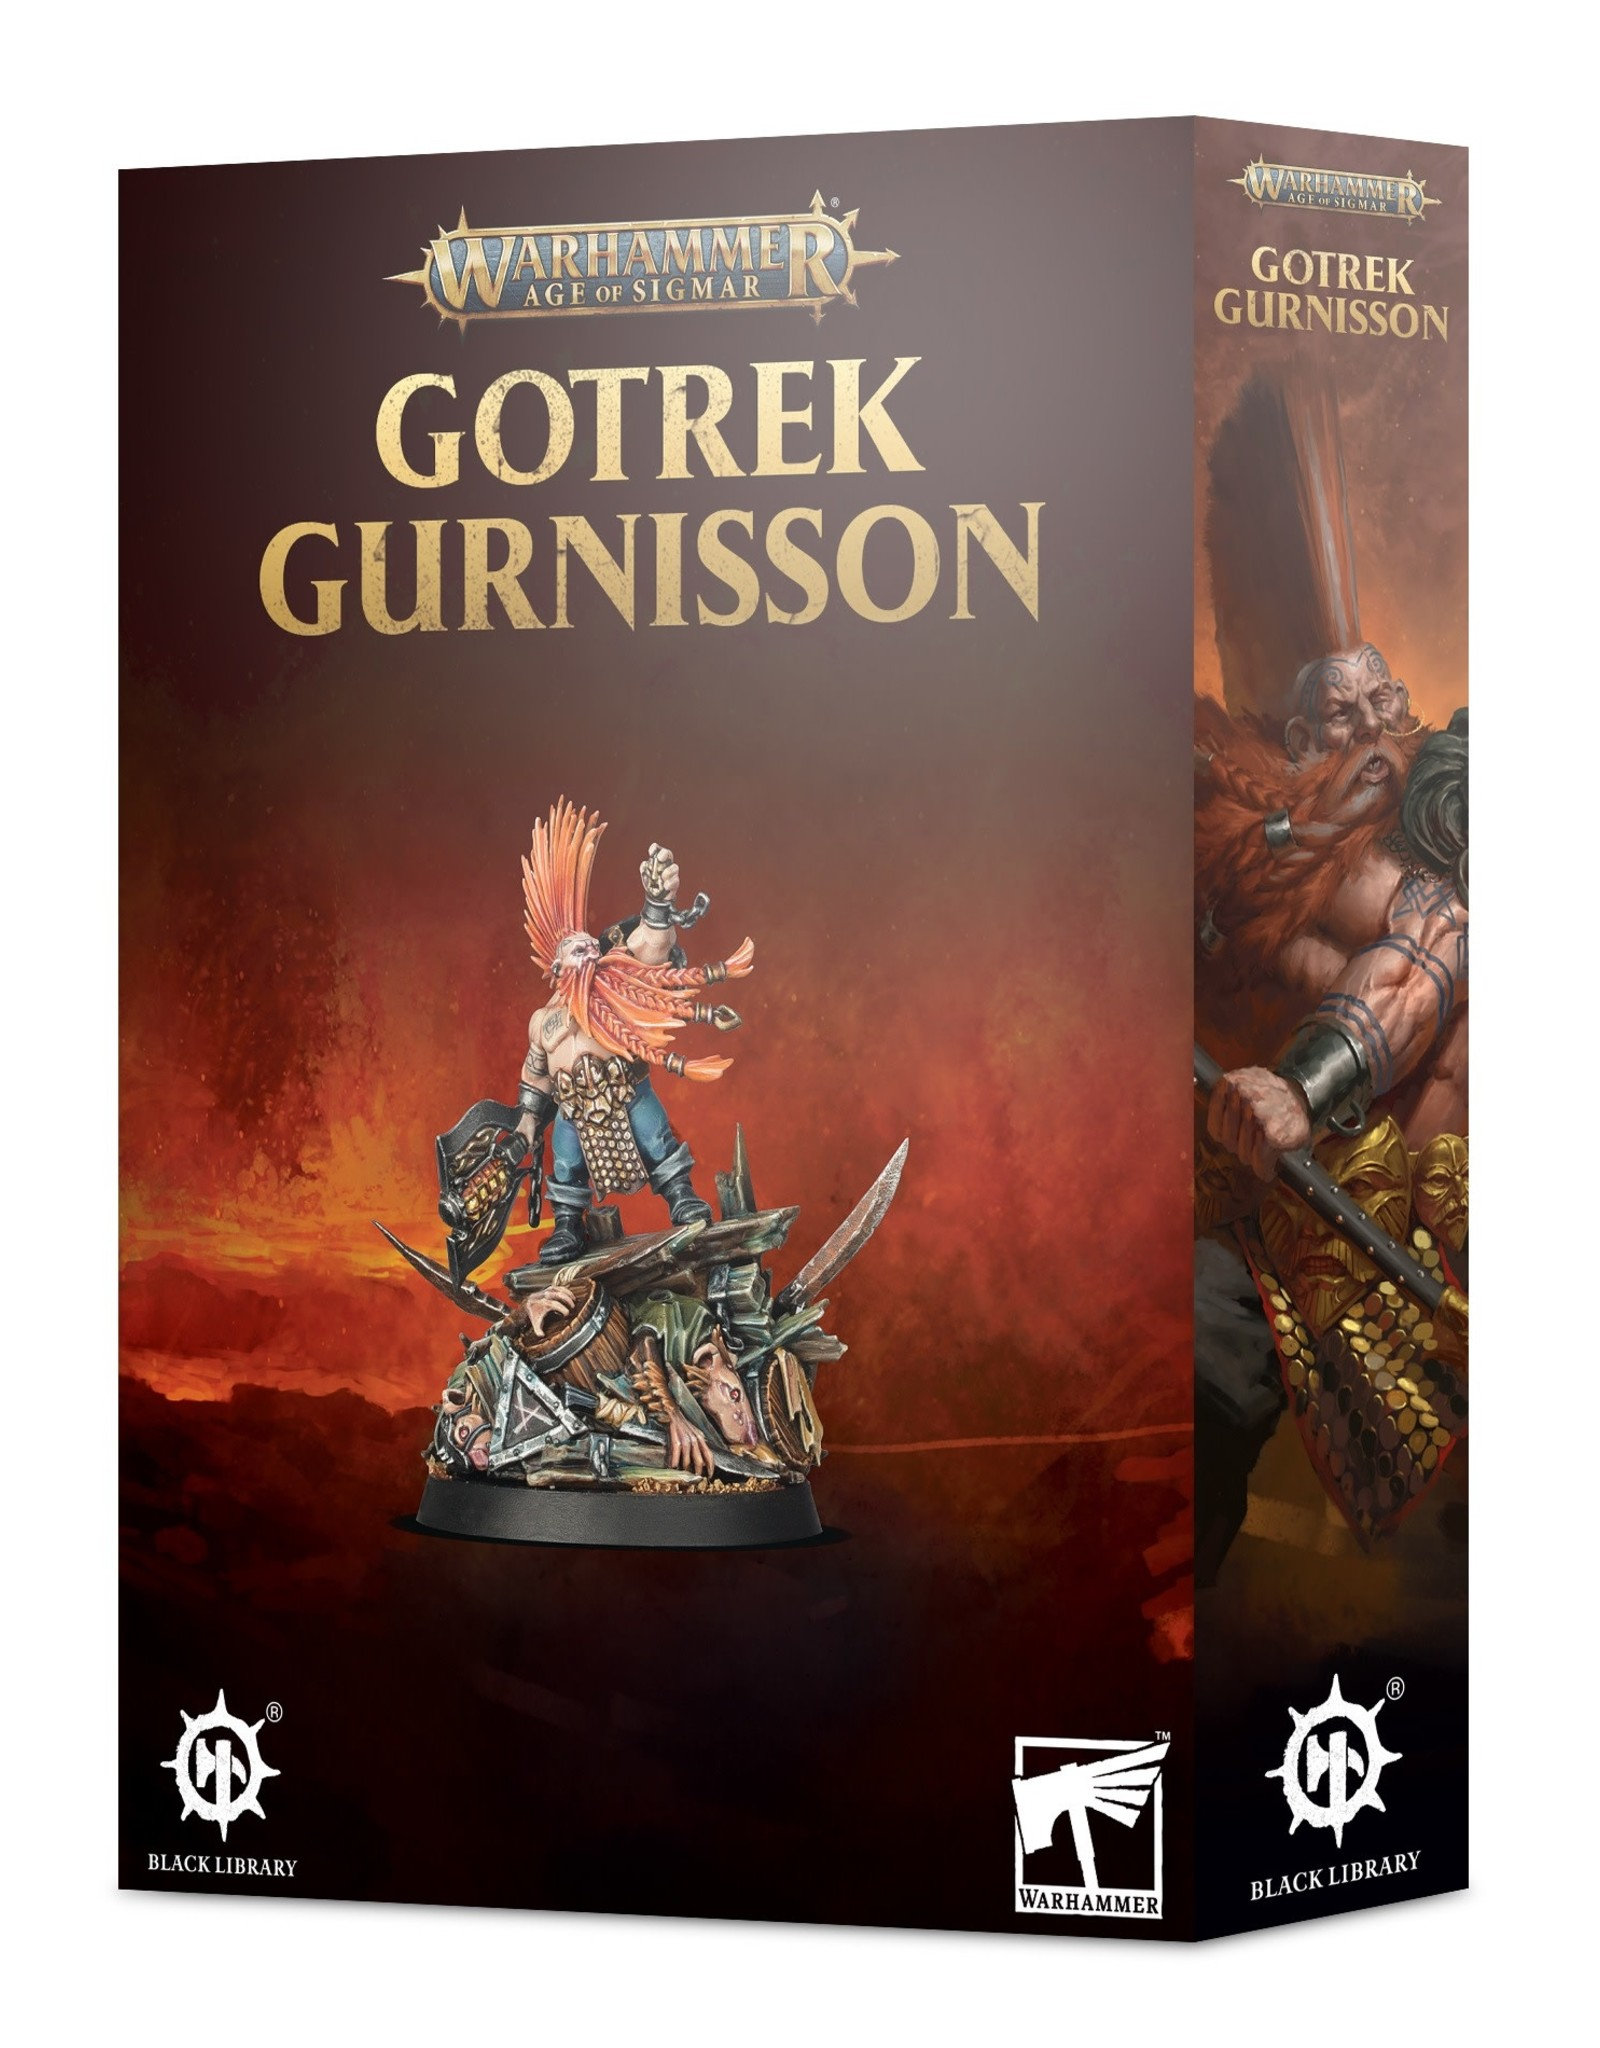 Age of Sigmar Gotrek Gurnisson